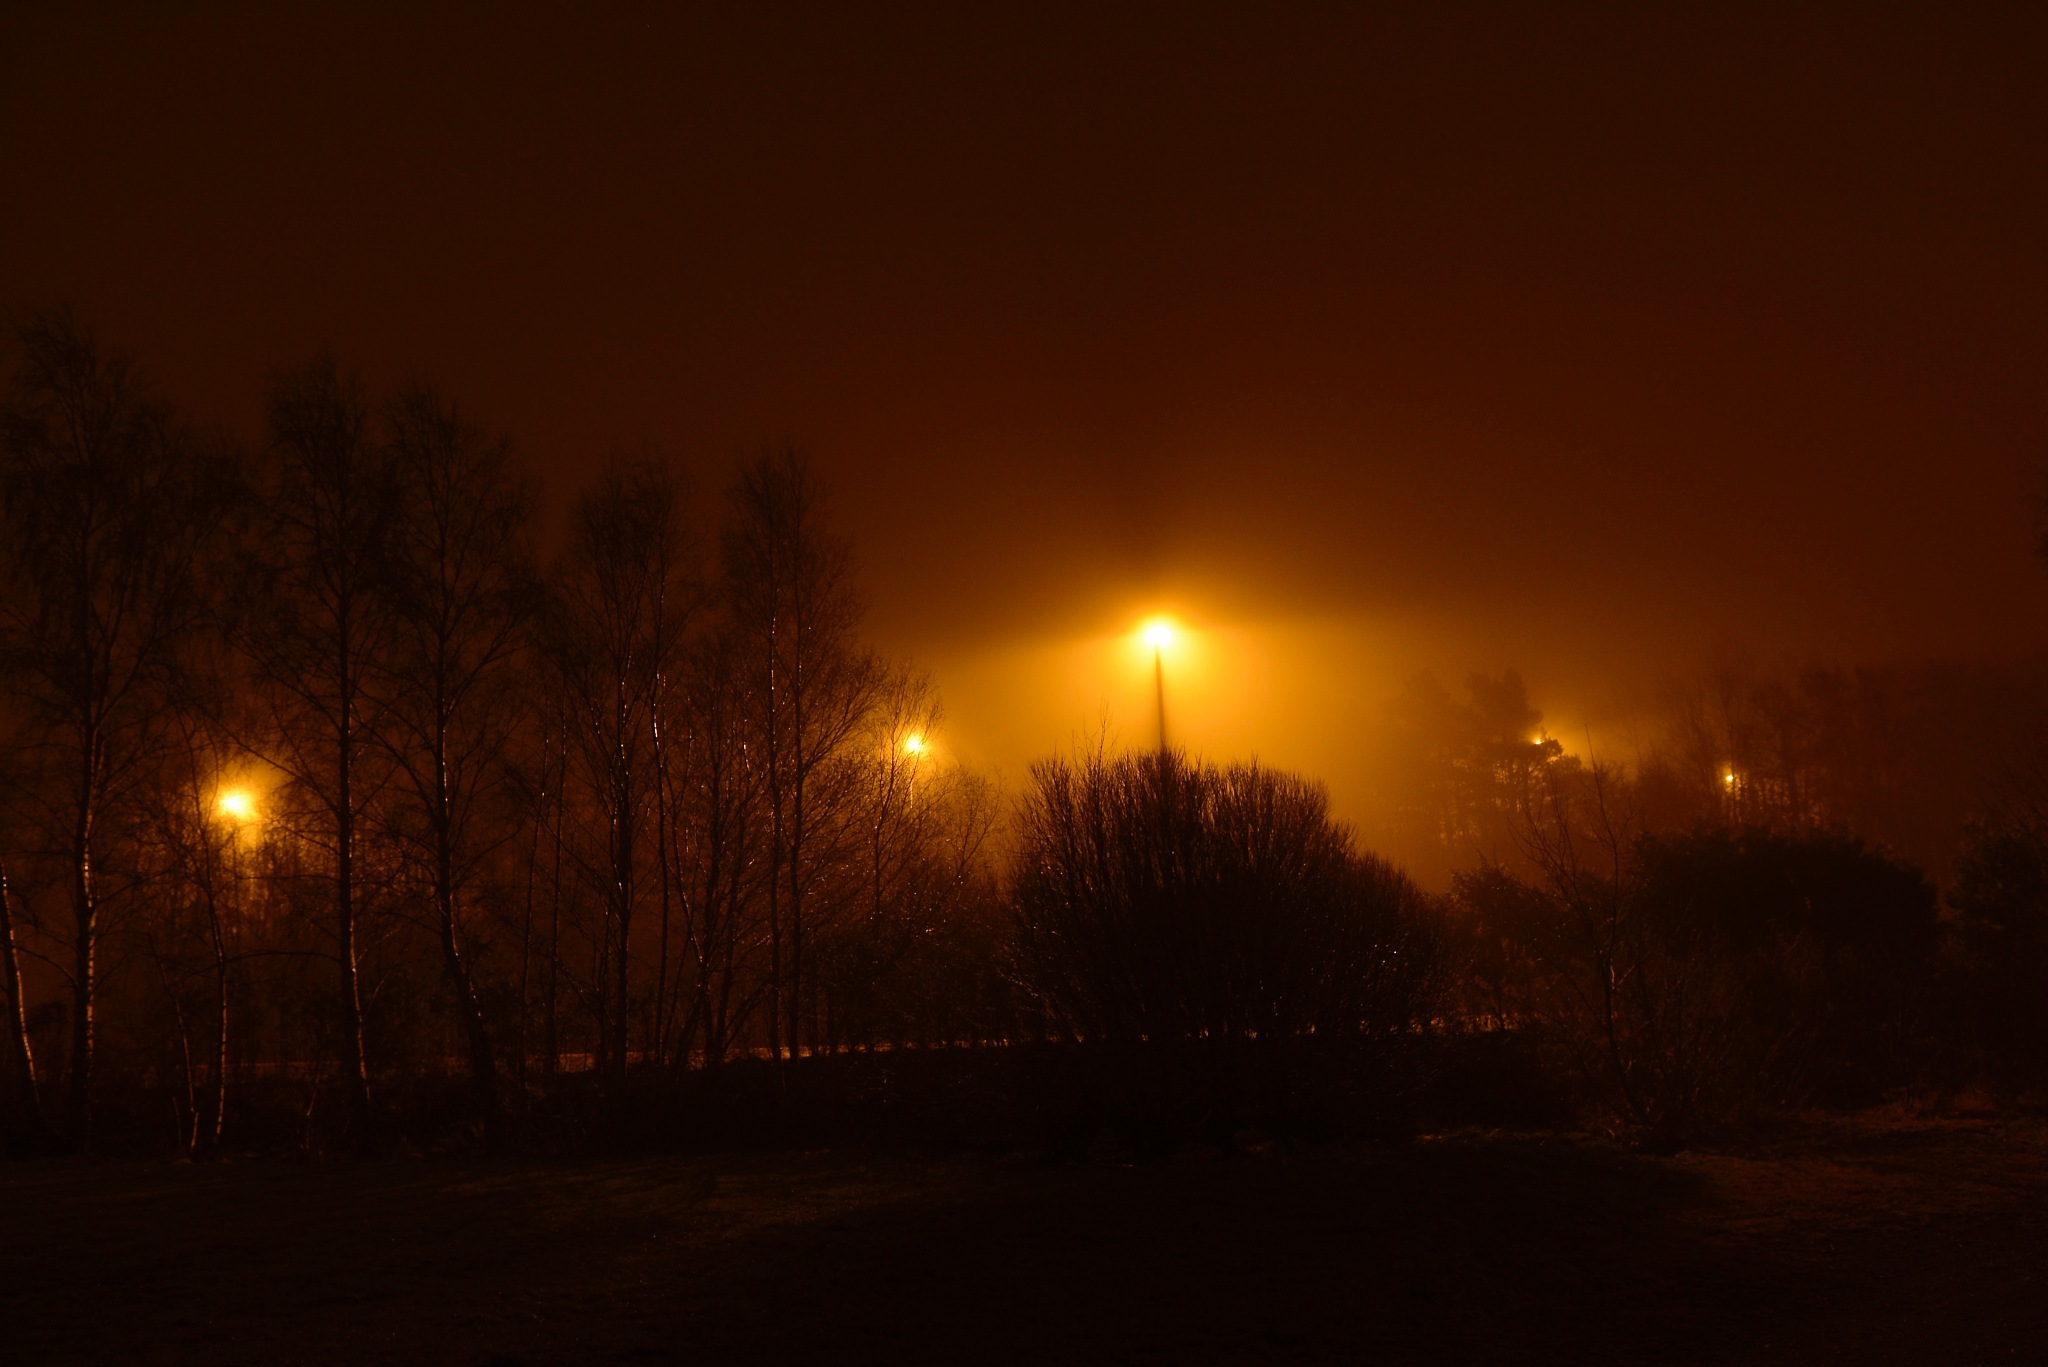 Misty night by Micke